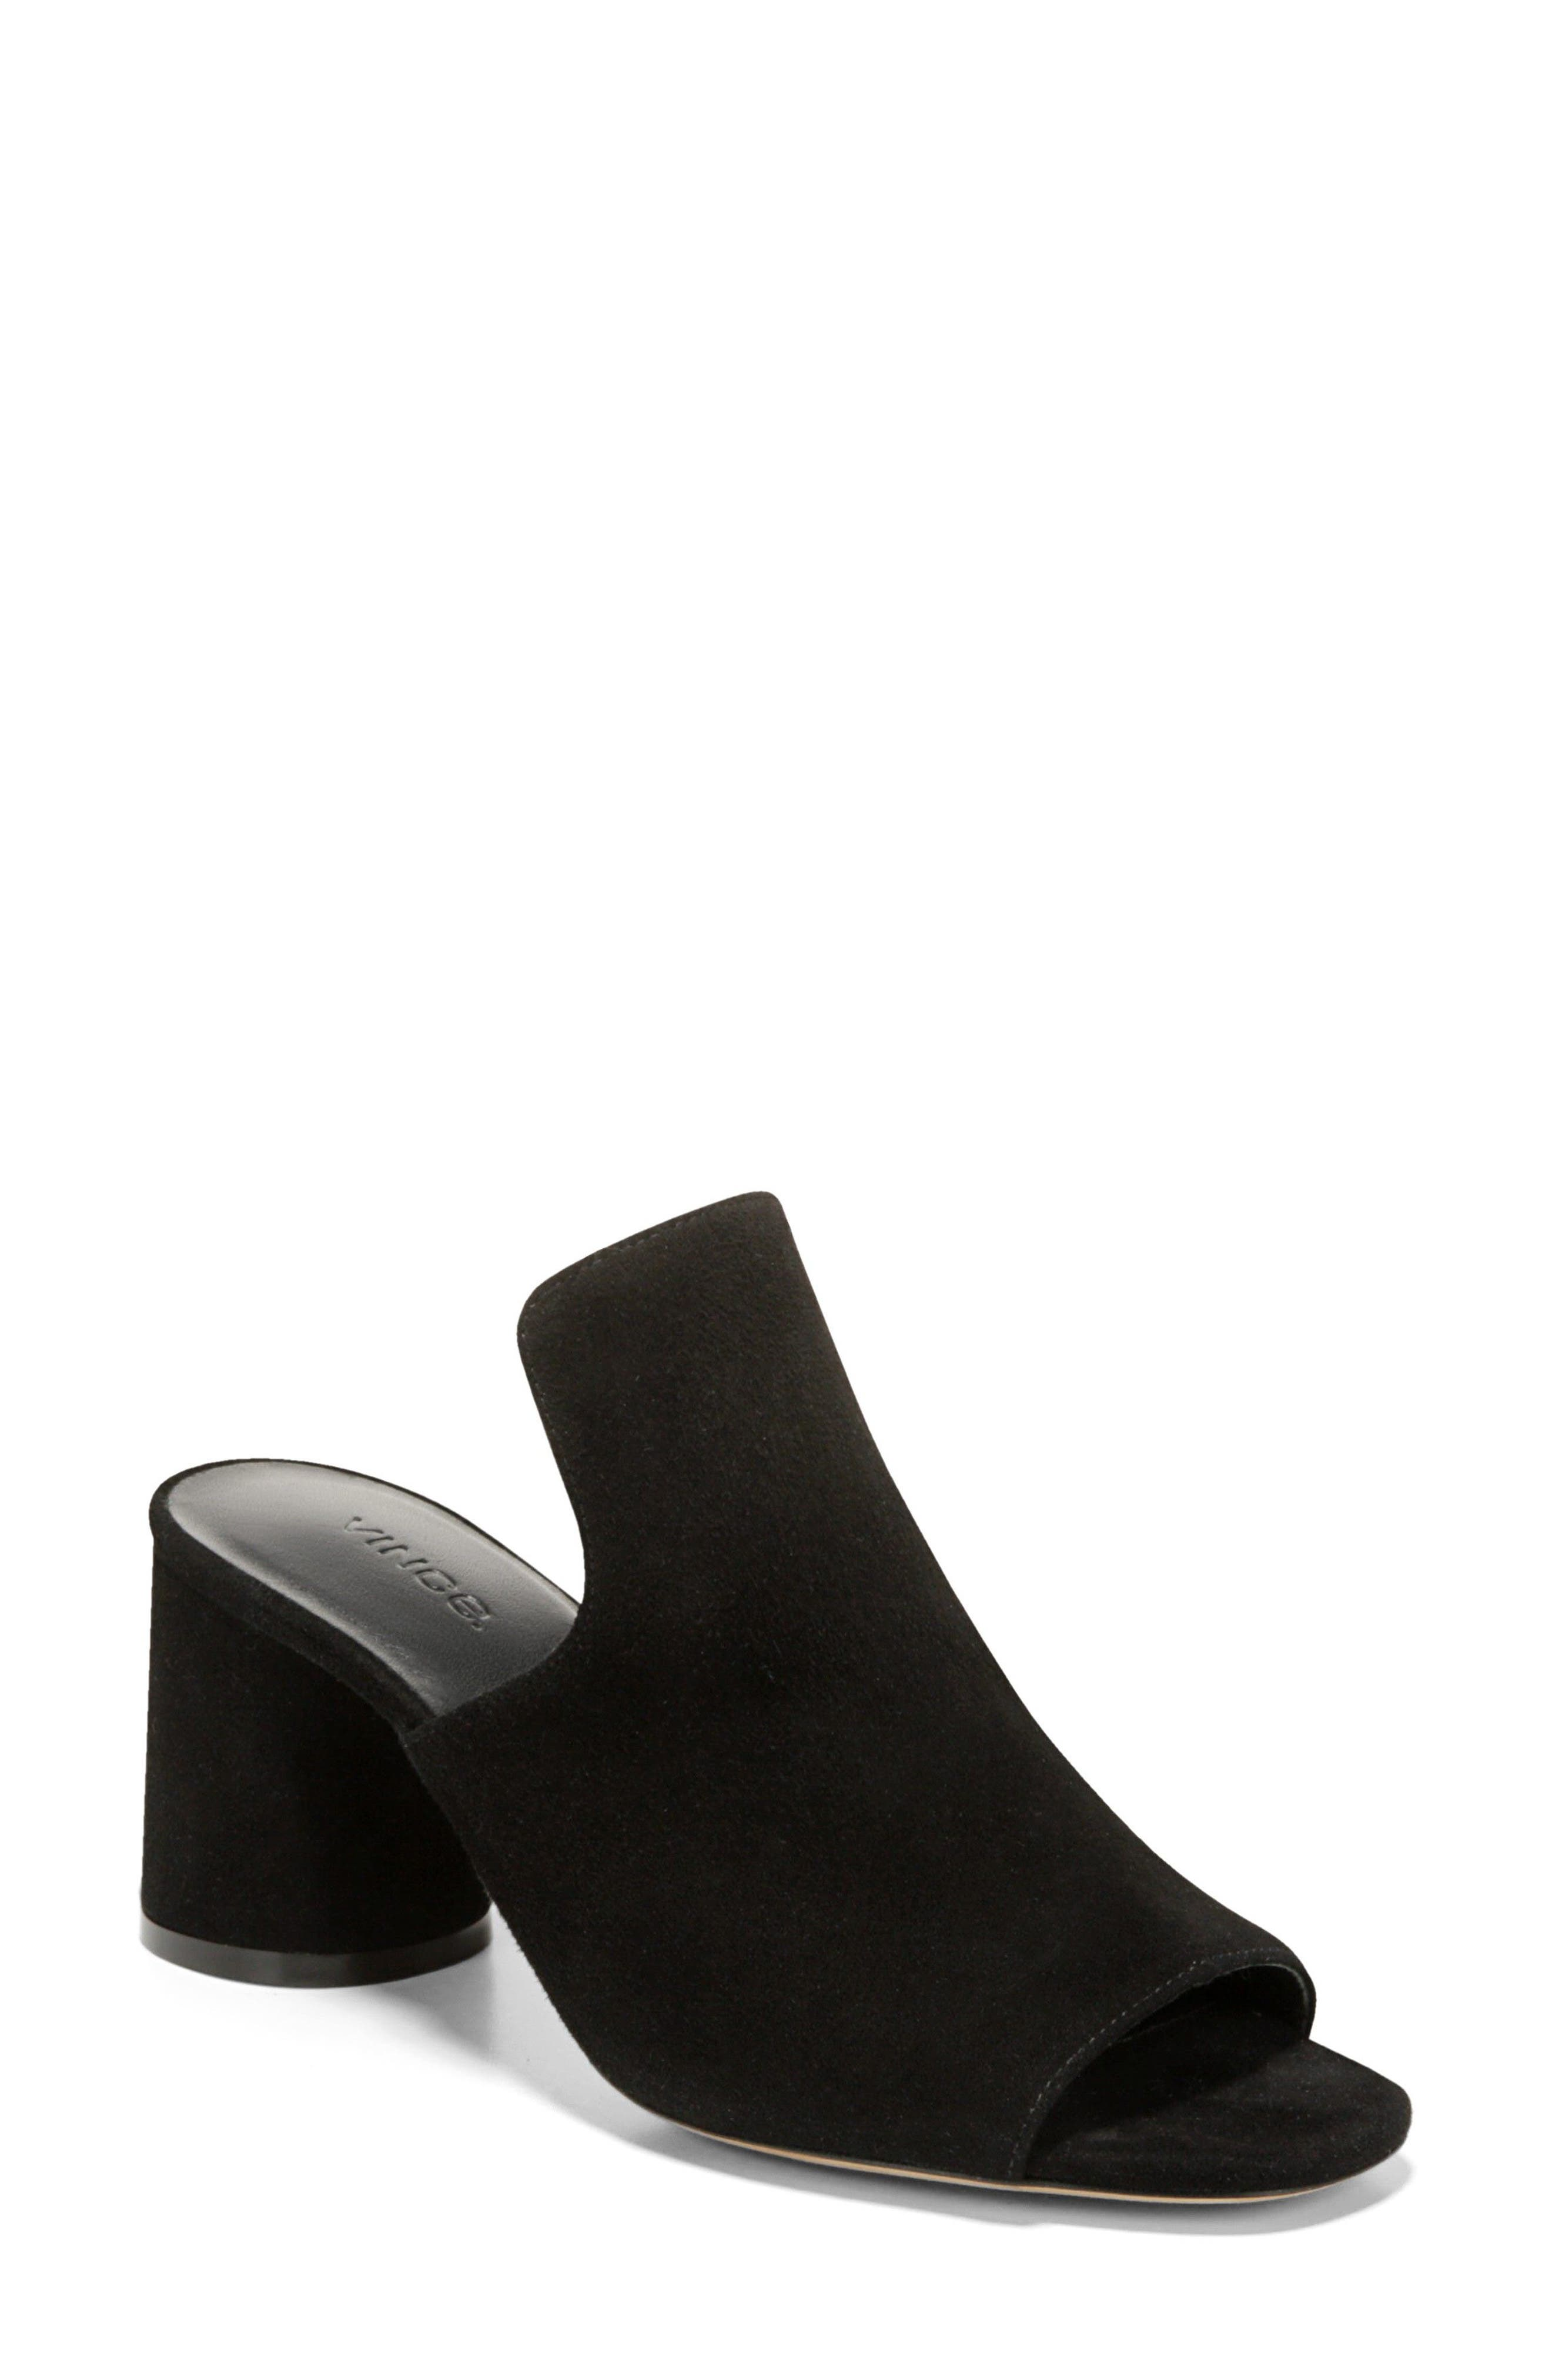 Tanay Loafer Mule,                             Main thumbnail 1, color,                             BLACK SUEDE LEATHER